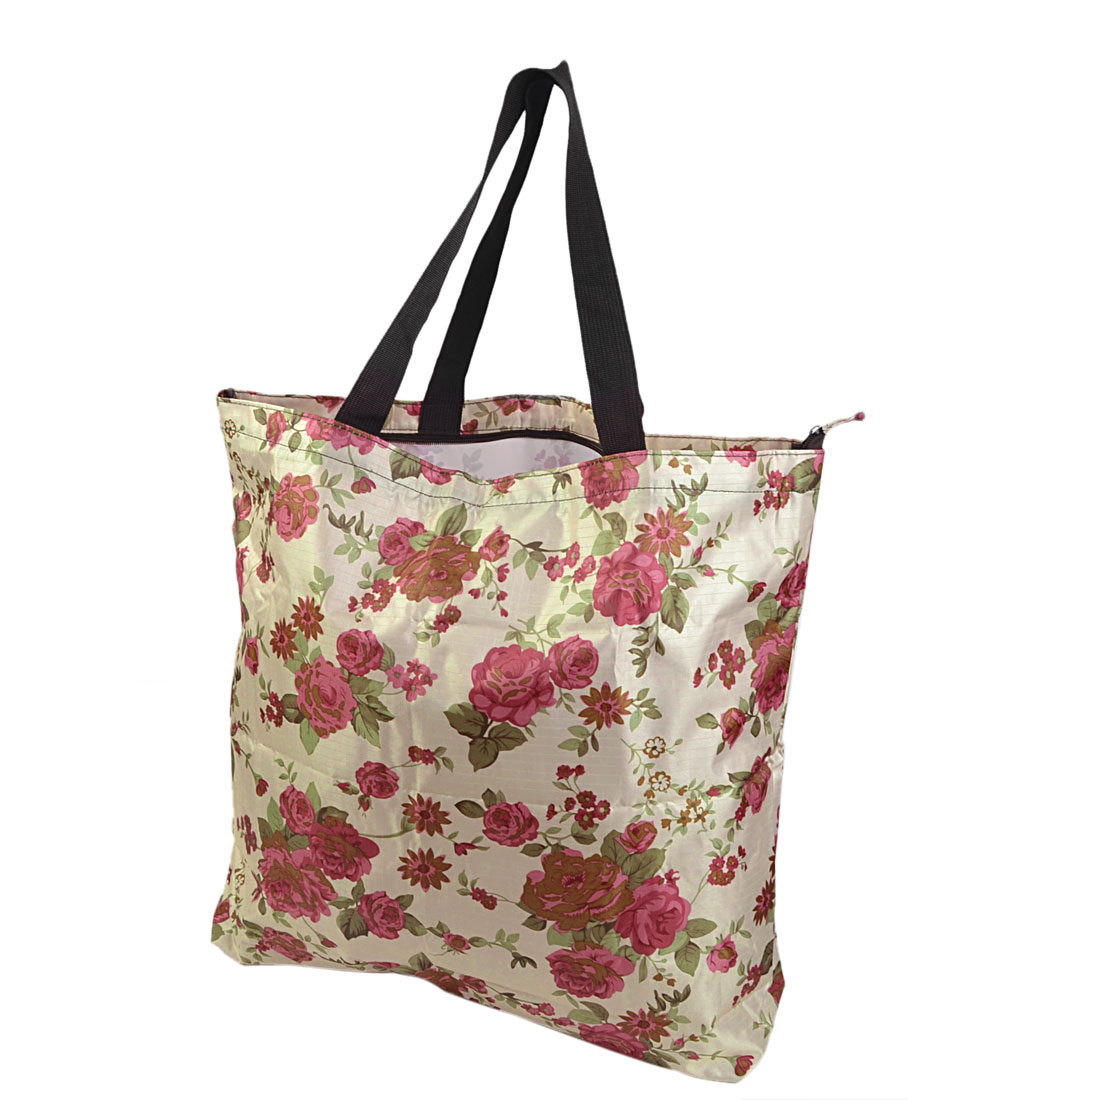 Traveling Household Foldable Flower Print Zipper Closure Storage Bag Handbag Tote Pouch Colorful 51x46x10cm